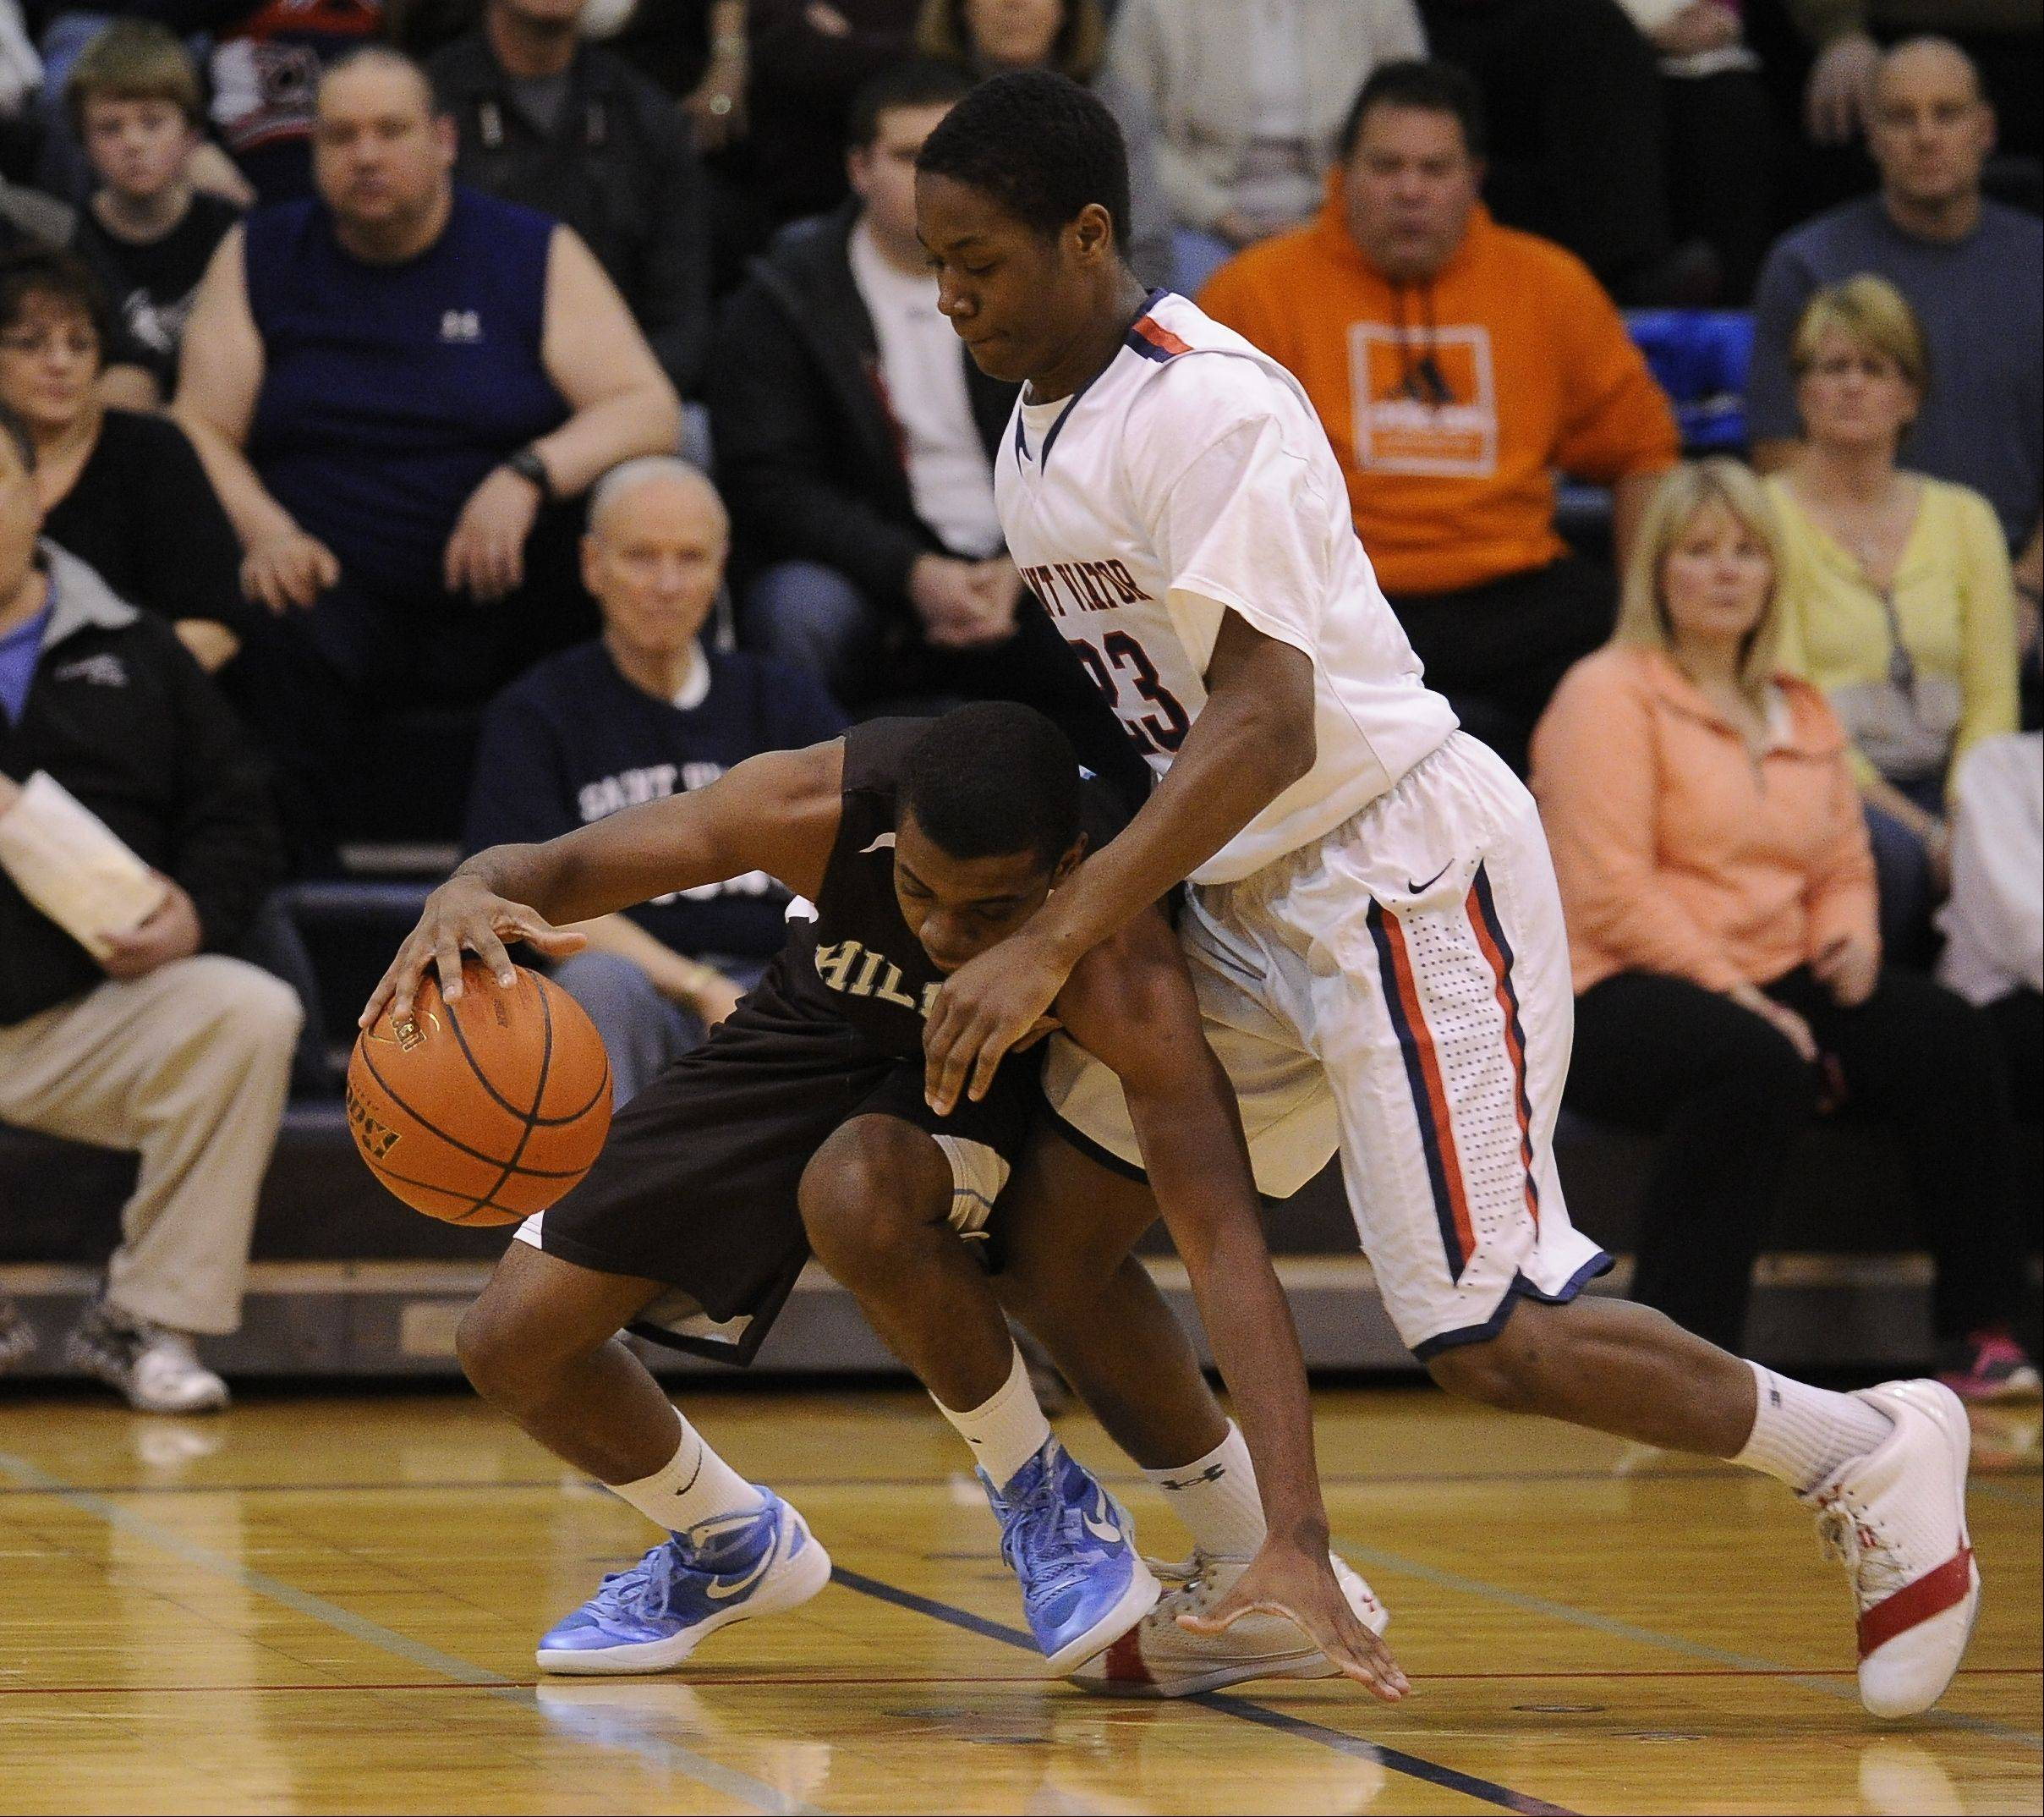 Images from the St. Viator vs. Joliet Catholic boys basketball game in Arlington Heights on Thursday, February 16th.